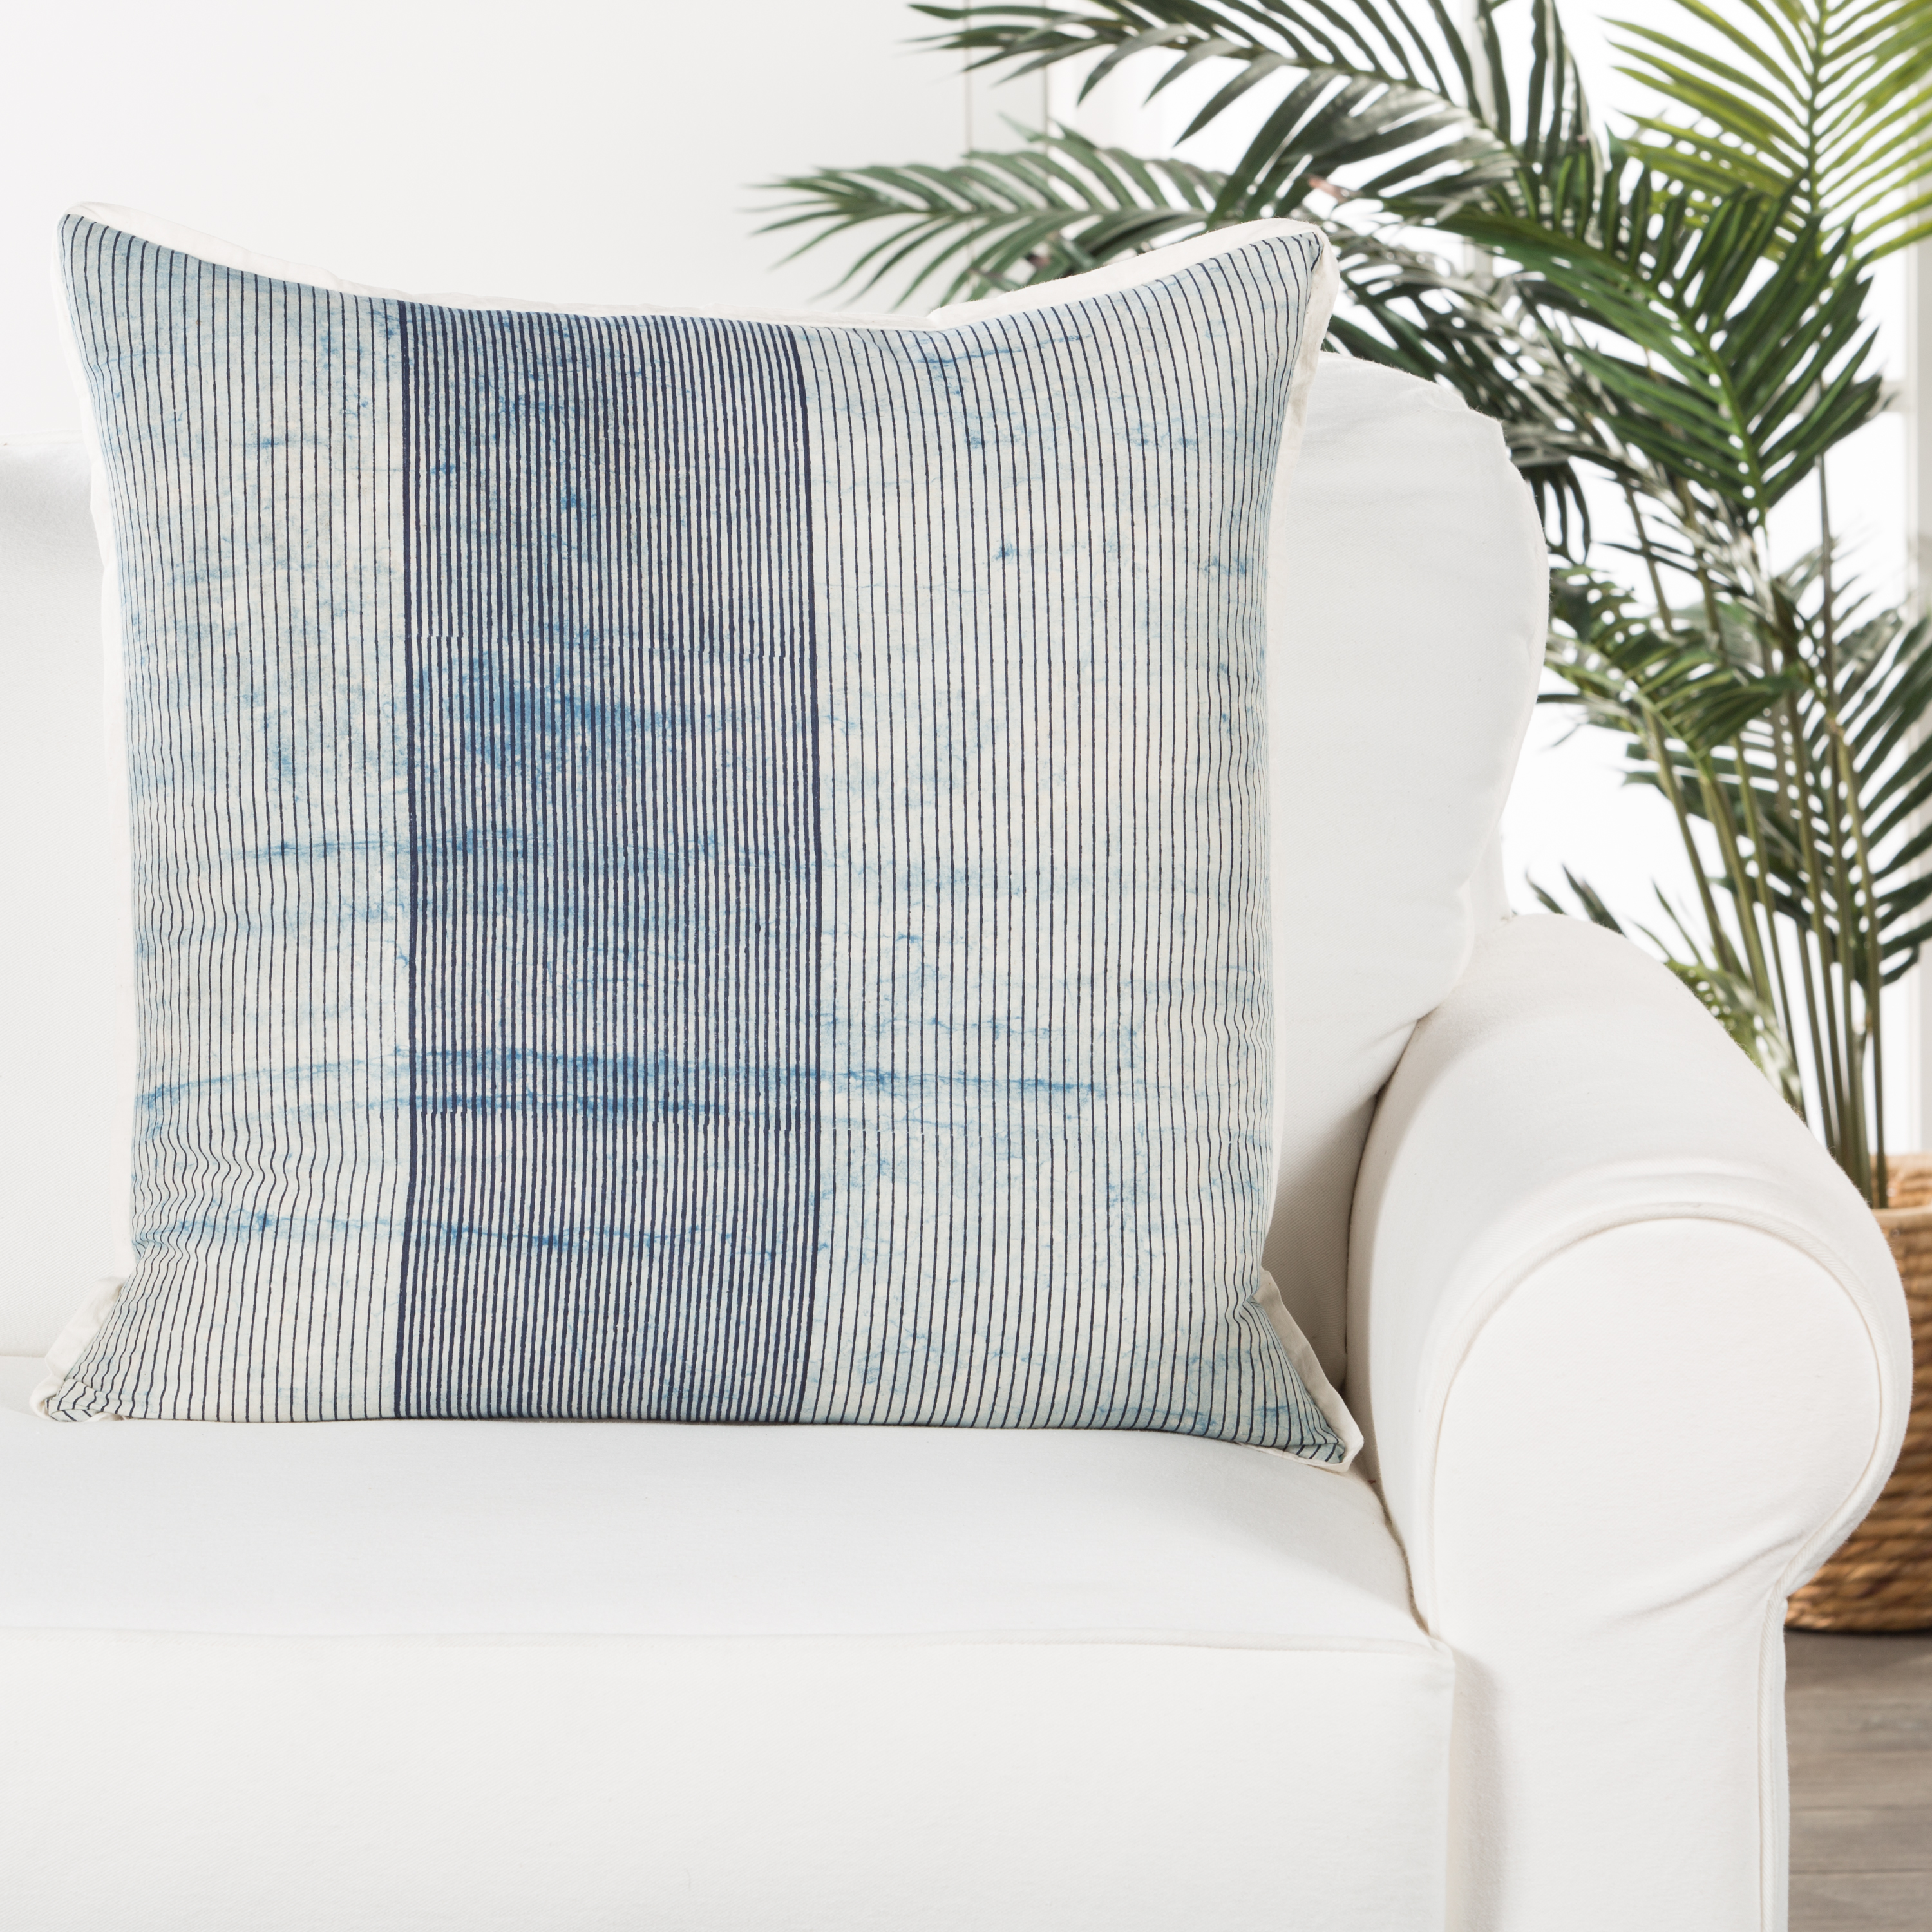 Alicia Pillow - Polyester Insert